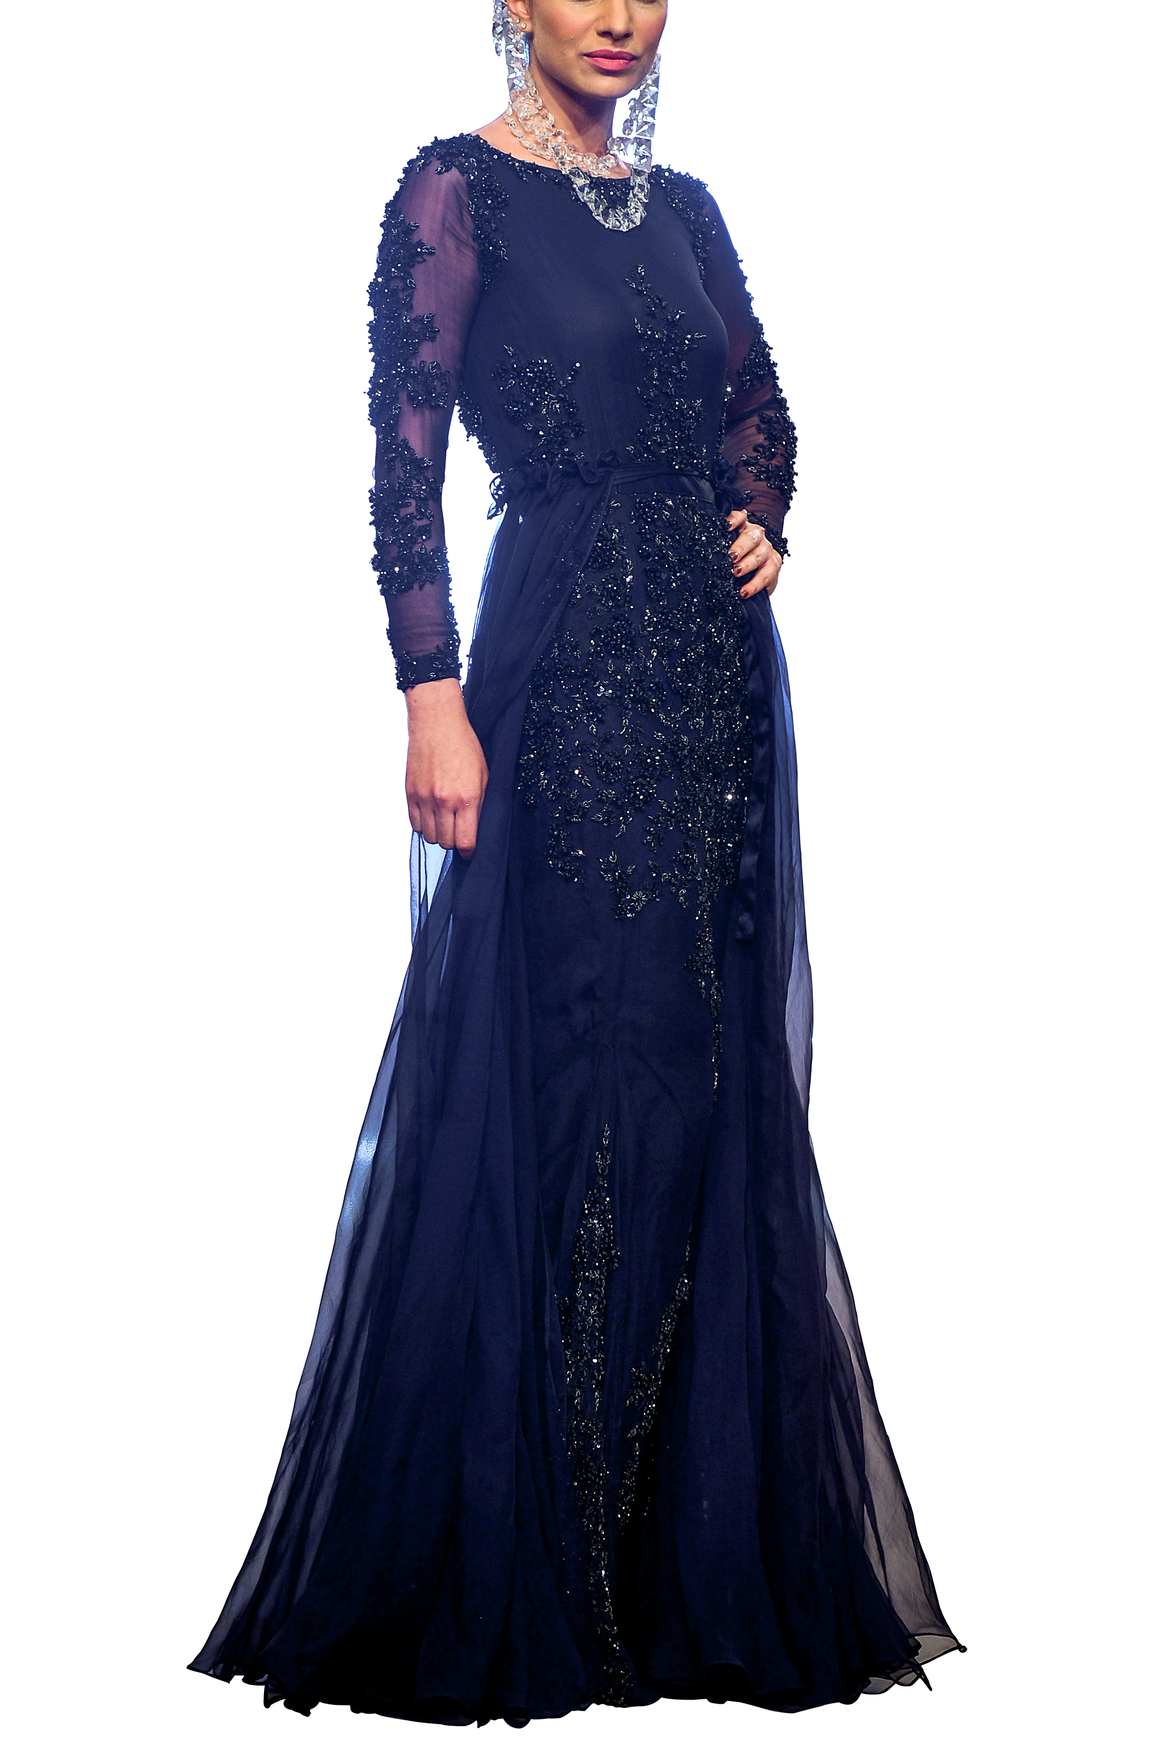 HSY - Black Embellished Floor Length Chiffon Gown